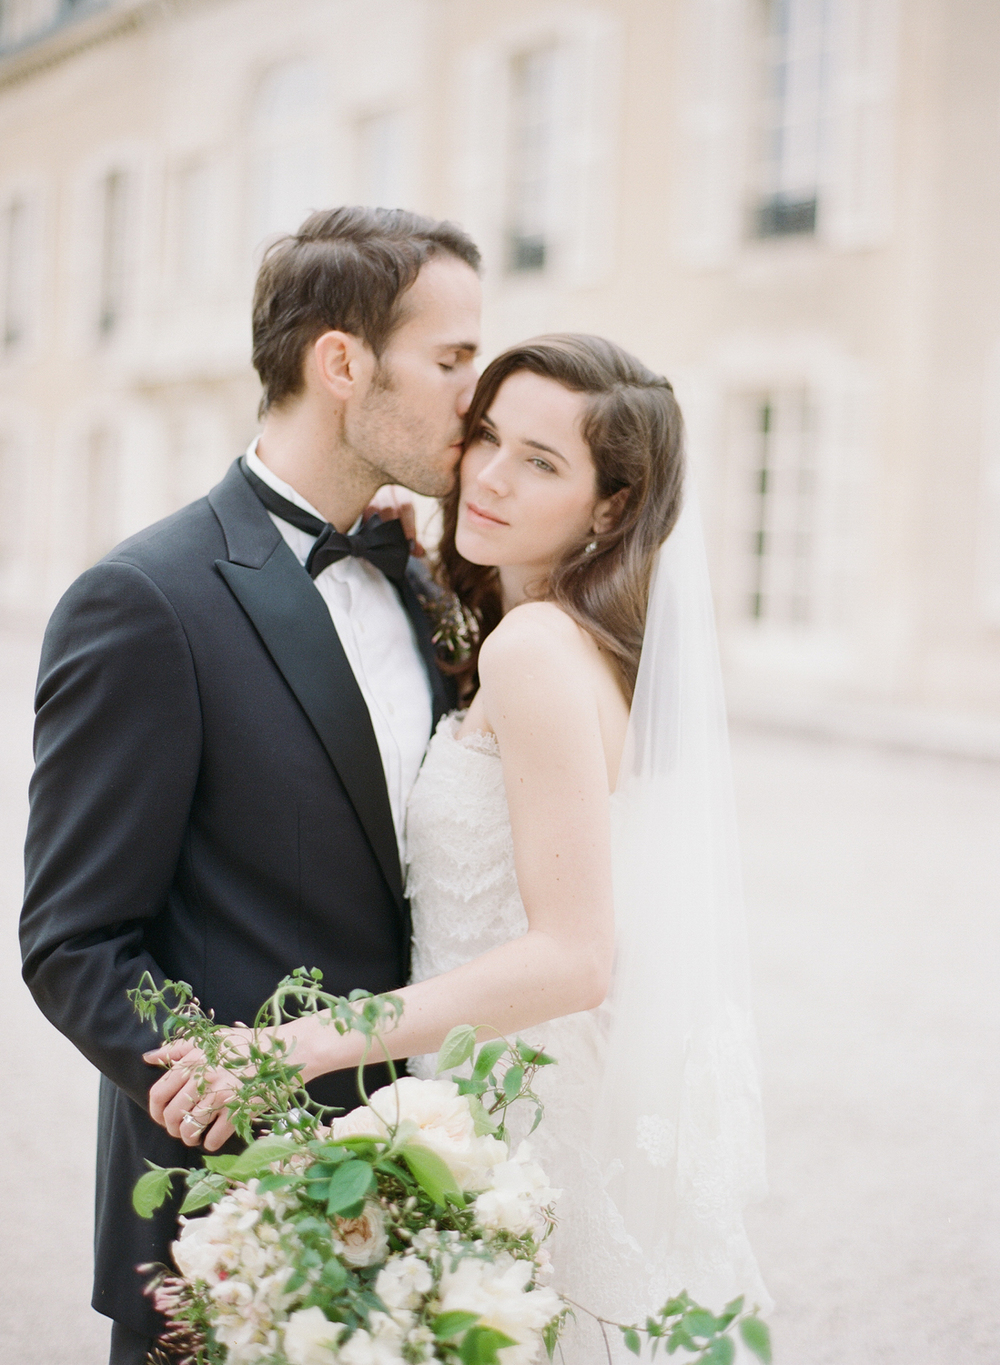 The groom kisses his bride on the cheek as they stand outside the Burgundy chateau; photo by Sylvie Gil